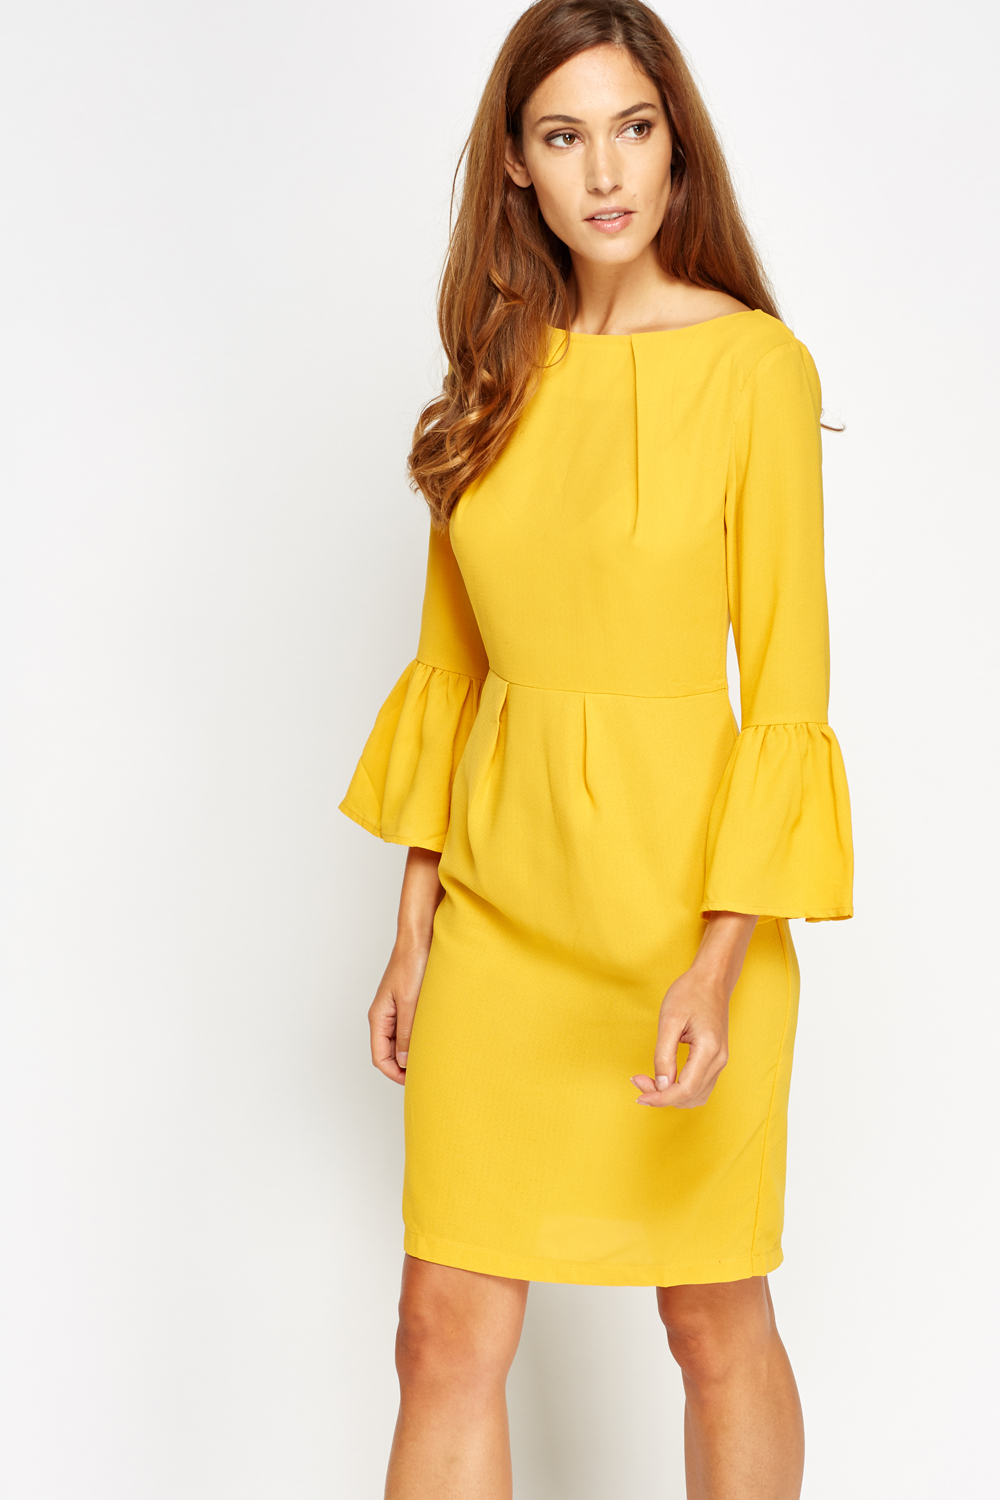 1ac9cedc38 Pleated Sleeves Dress - Just £5